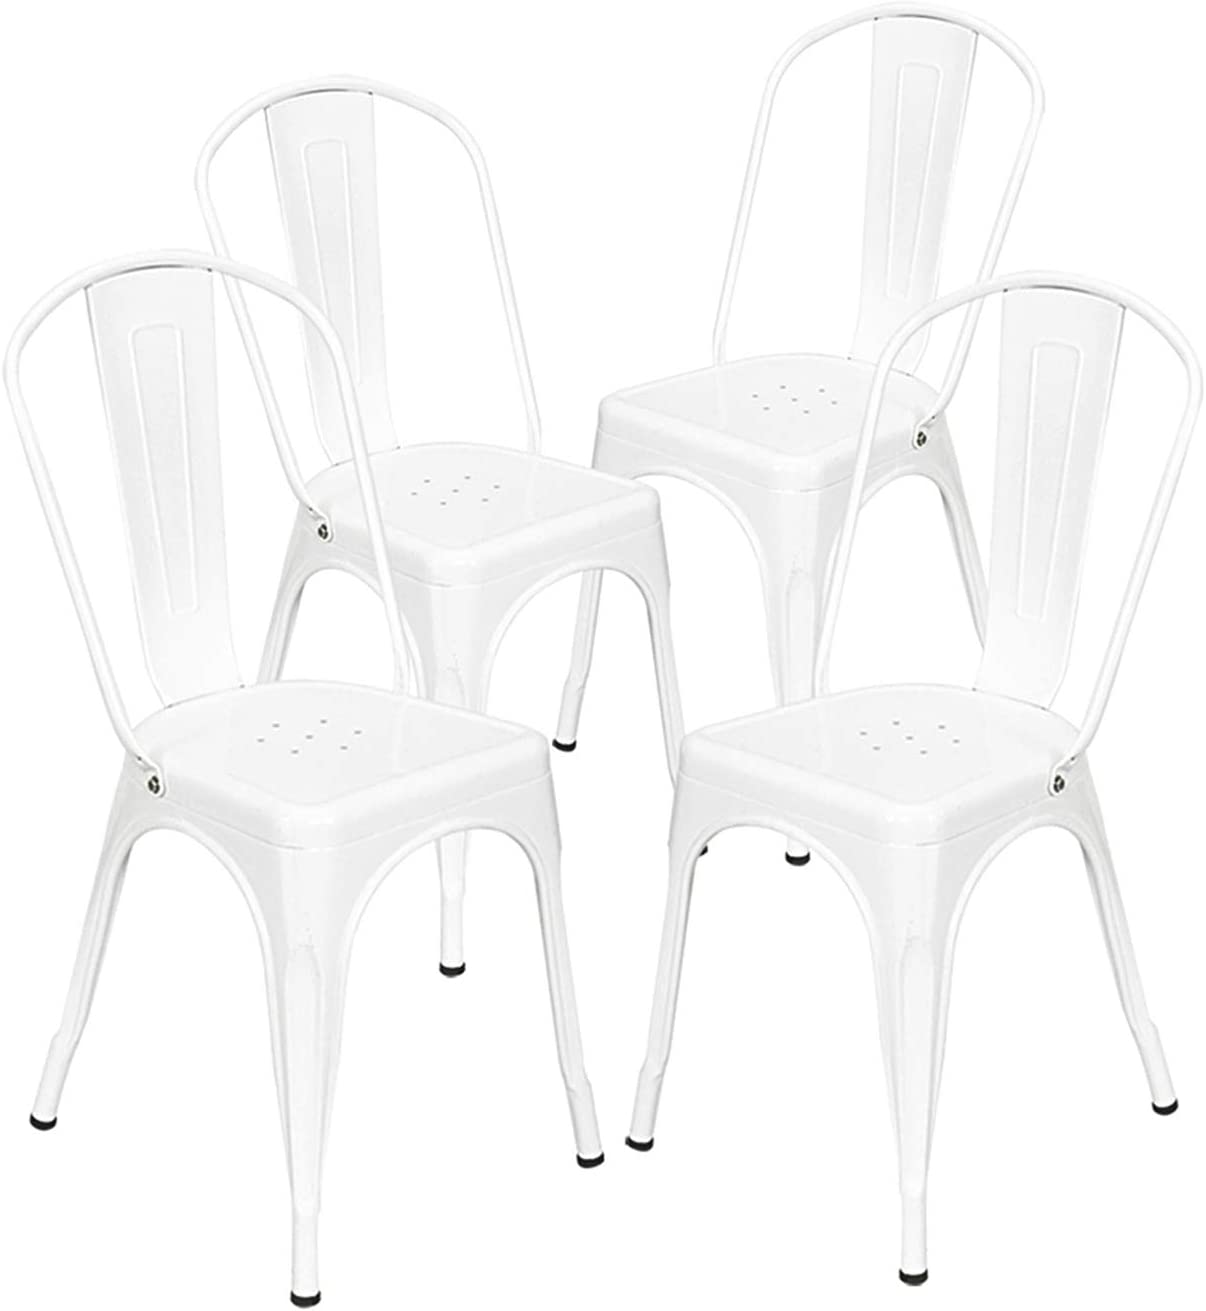 4pcs Industrial Style Iron Sheet Chair White Dining Chair Indoor-Outdoor Industrial Vintage Chairs Bistro Kitchen Cafe Chair